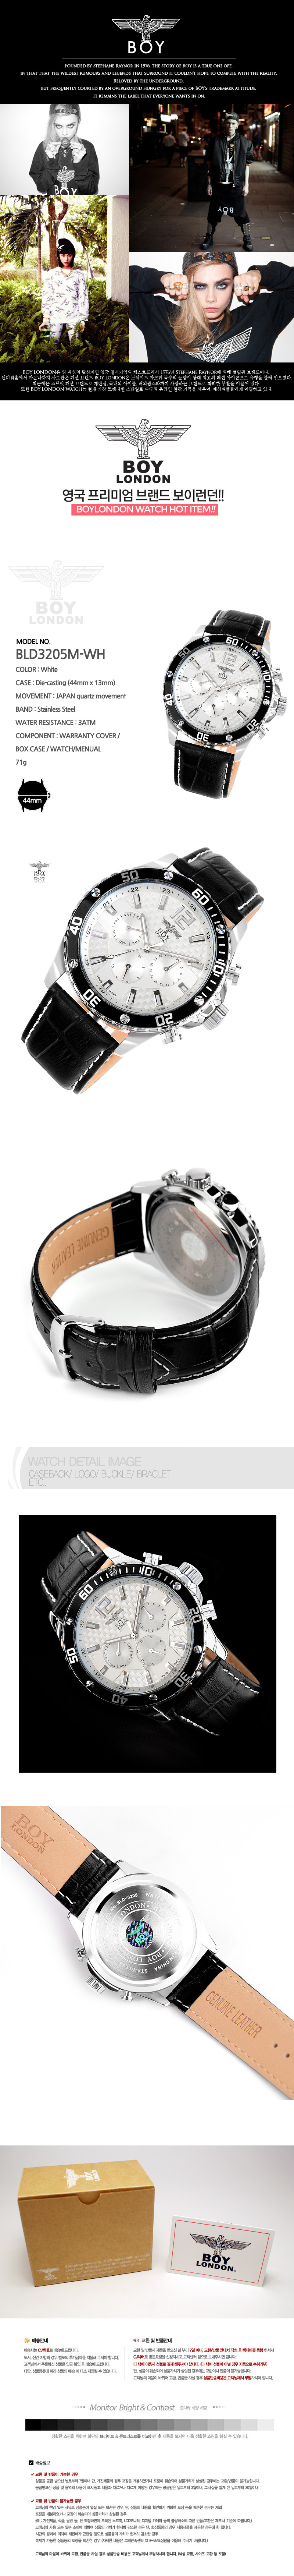 [ BOYLONDON ] BOYLONDON LEATHER WATCH SPINEL BLD3205M-WH